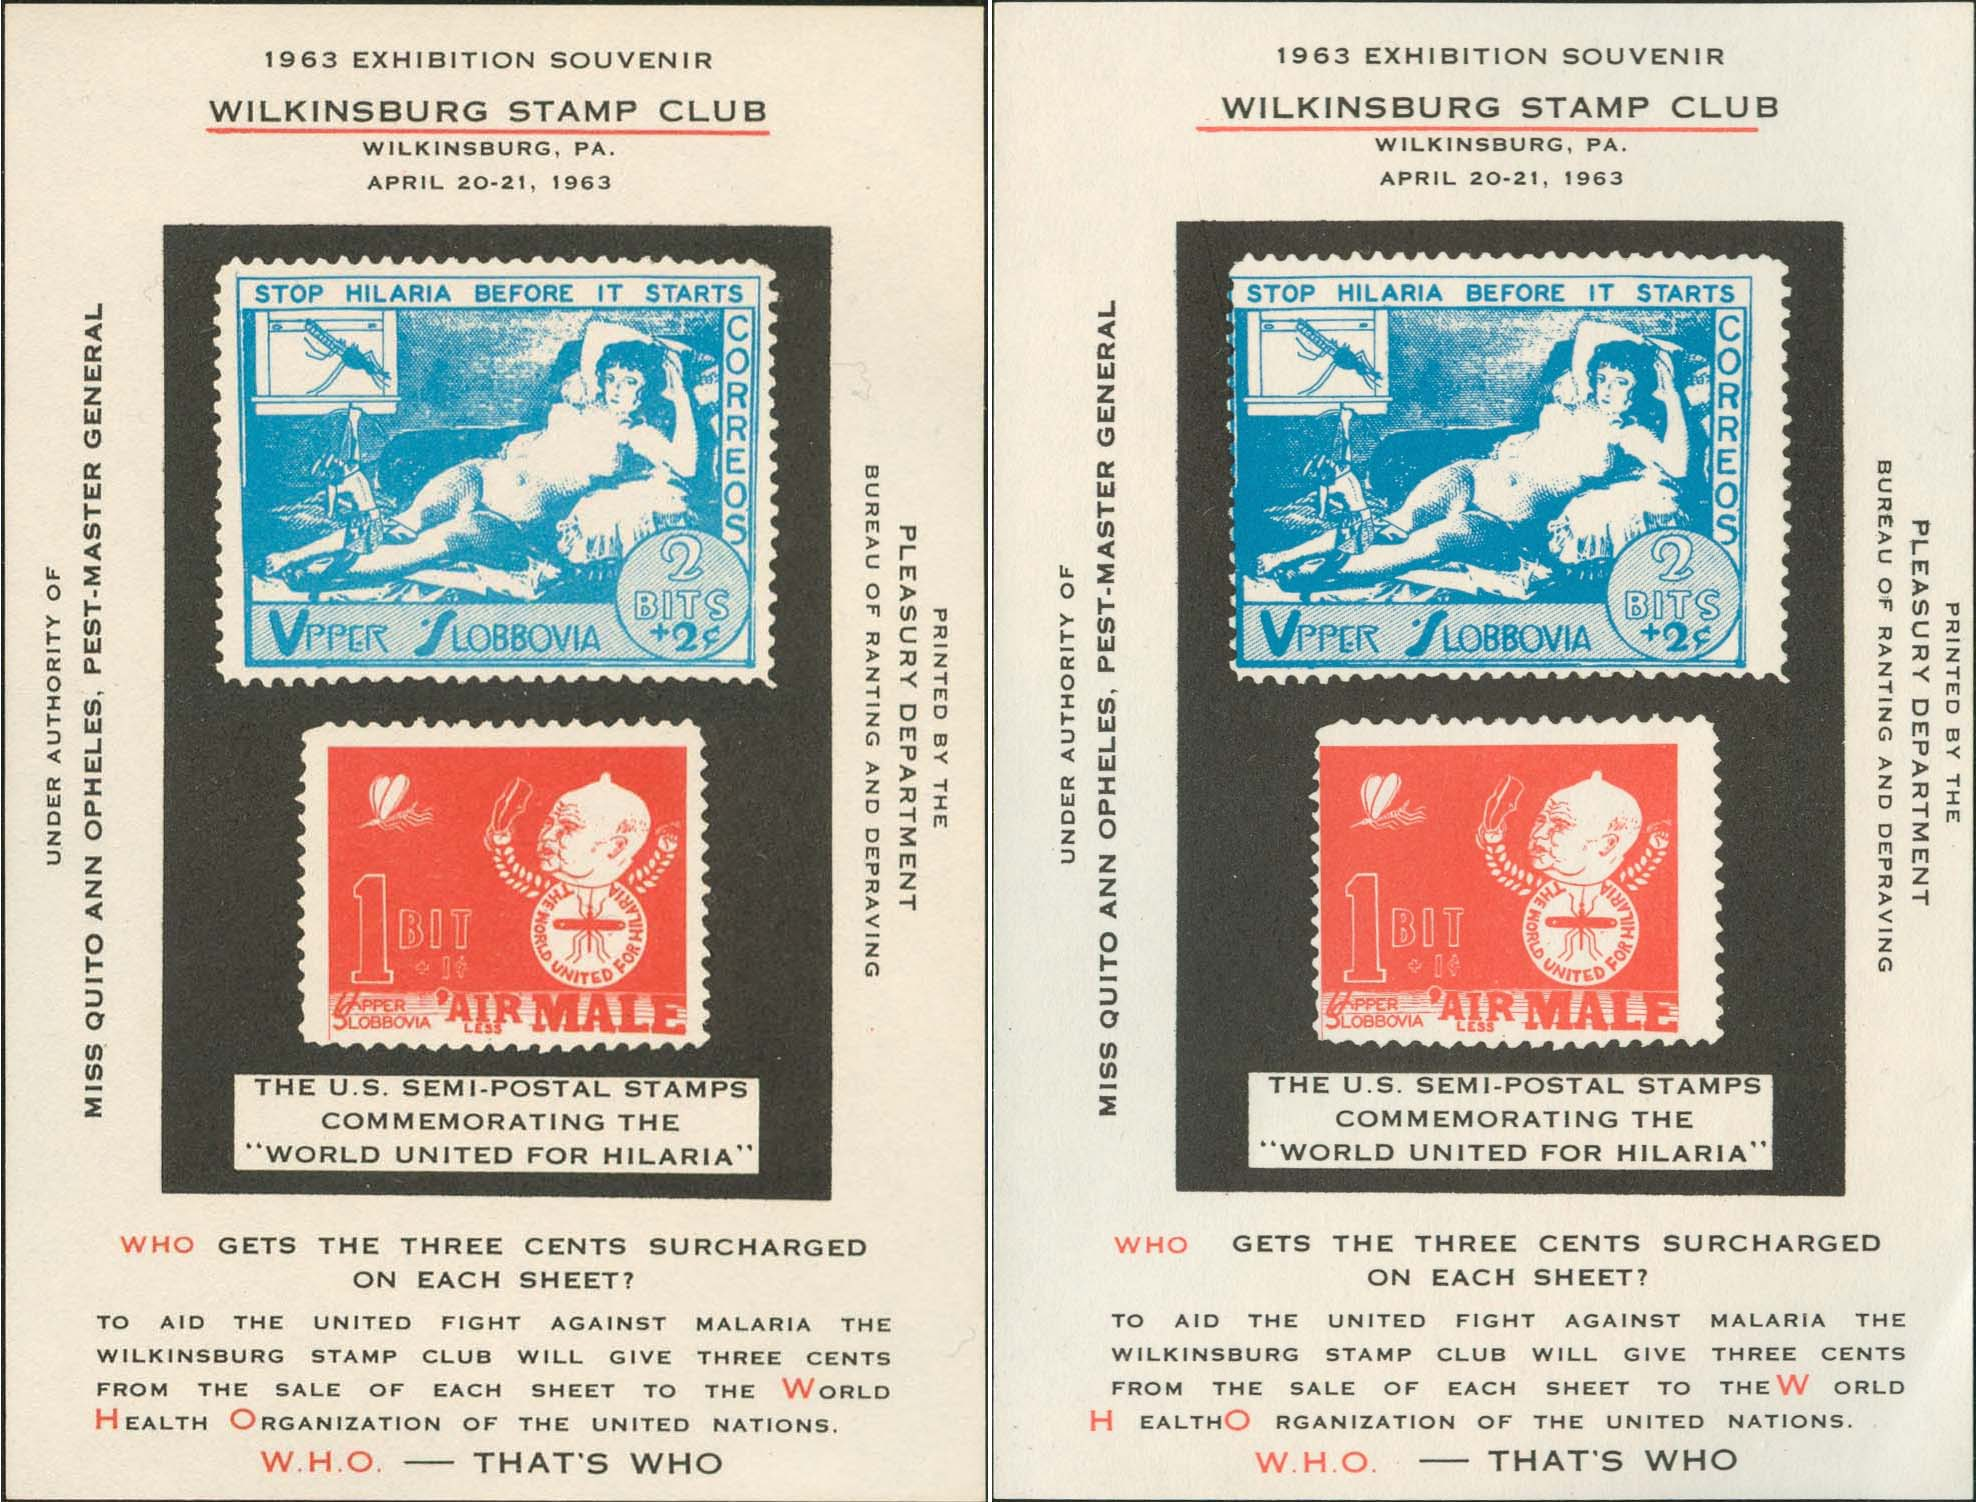 "Wilkinsburg Stamp Club Souvenir Sheet - Normal And ""Red/Blue Shifted Left"" Side By Side Comparison"